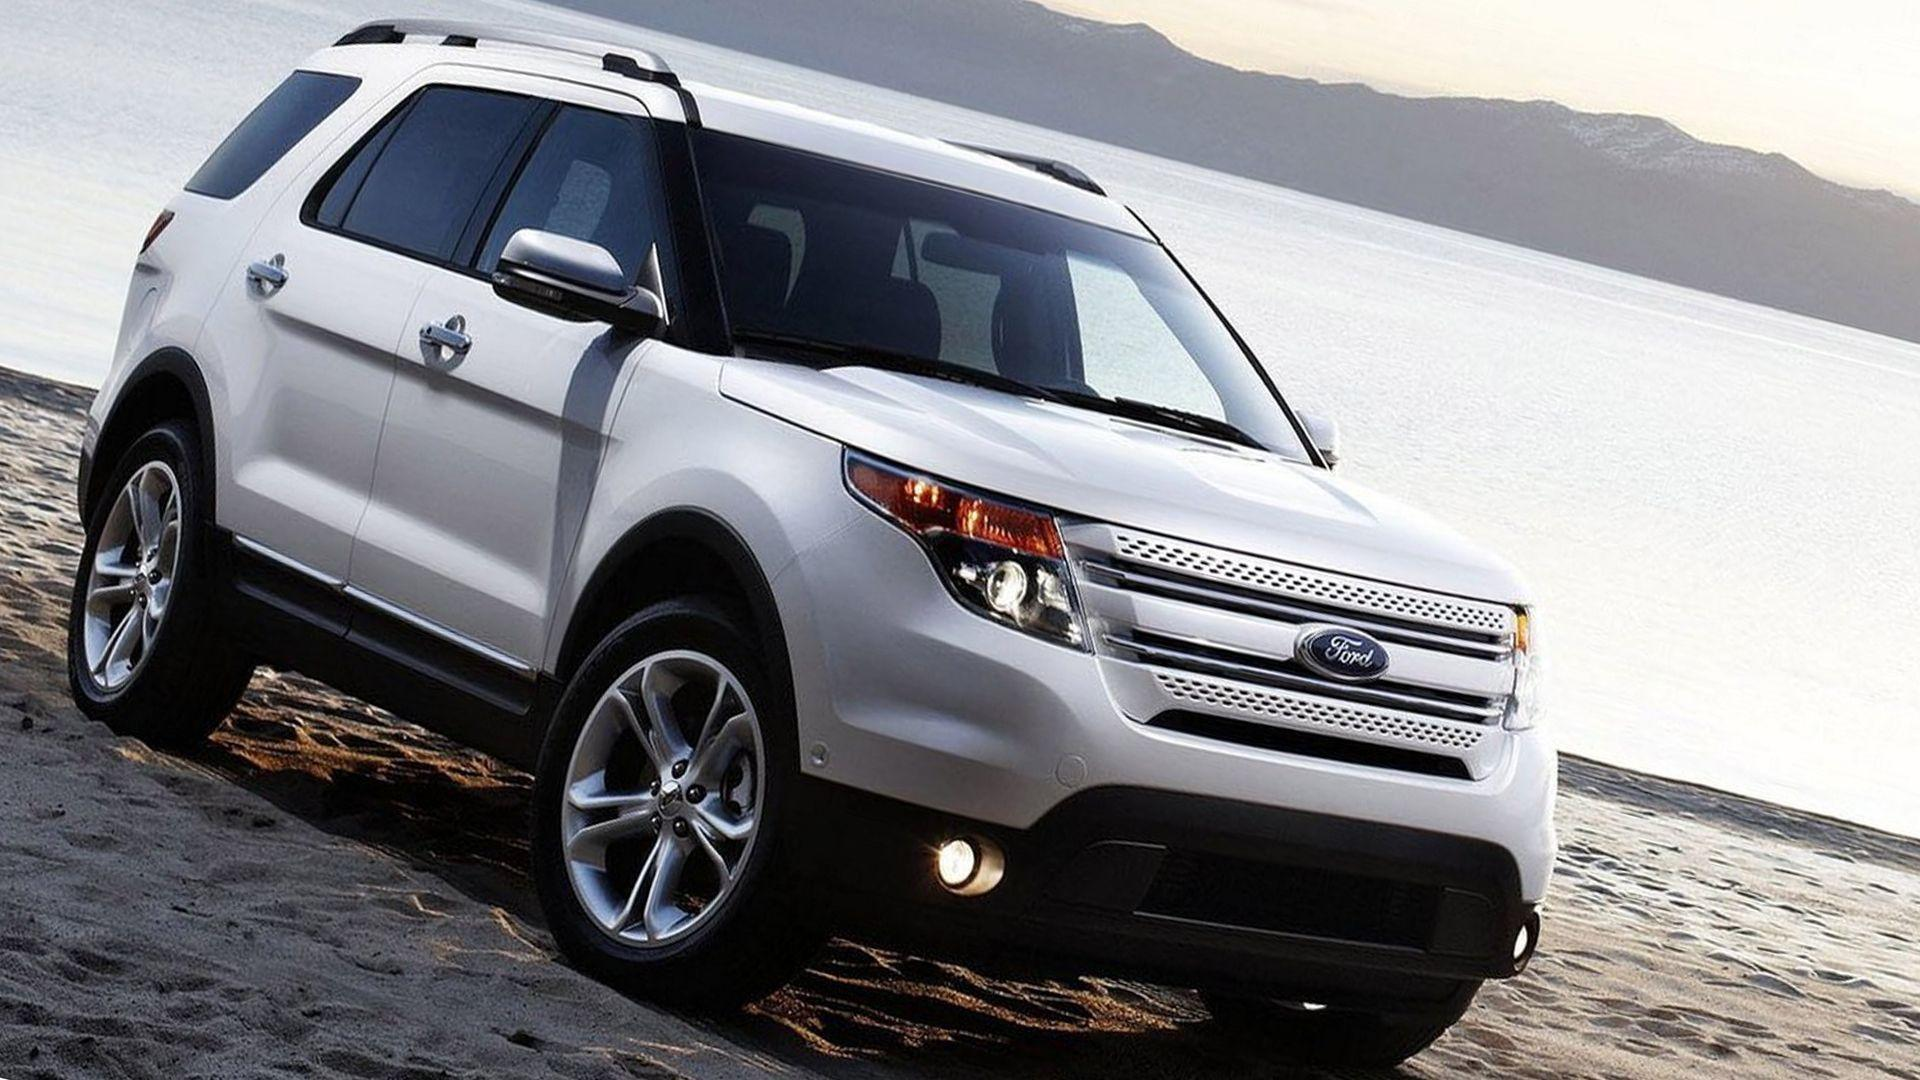 2019 Ford Explorer Wallpapers HD Desktop